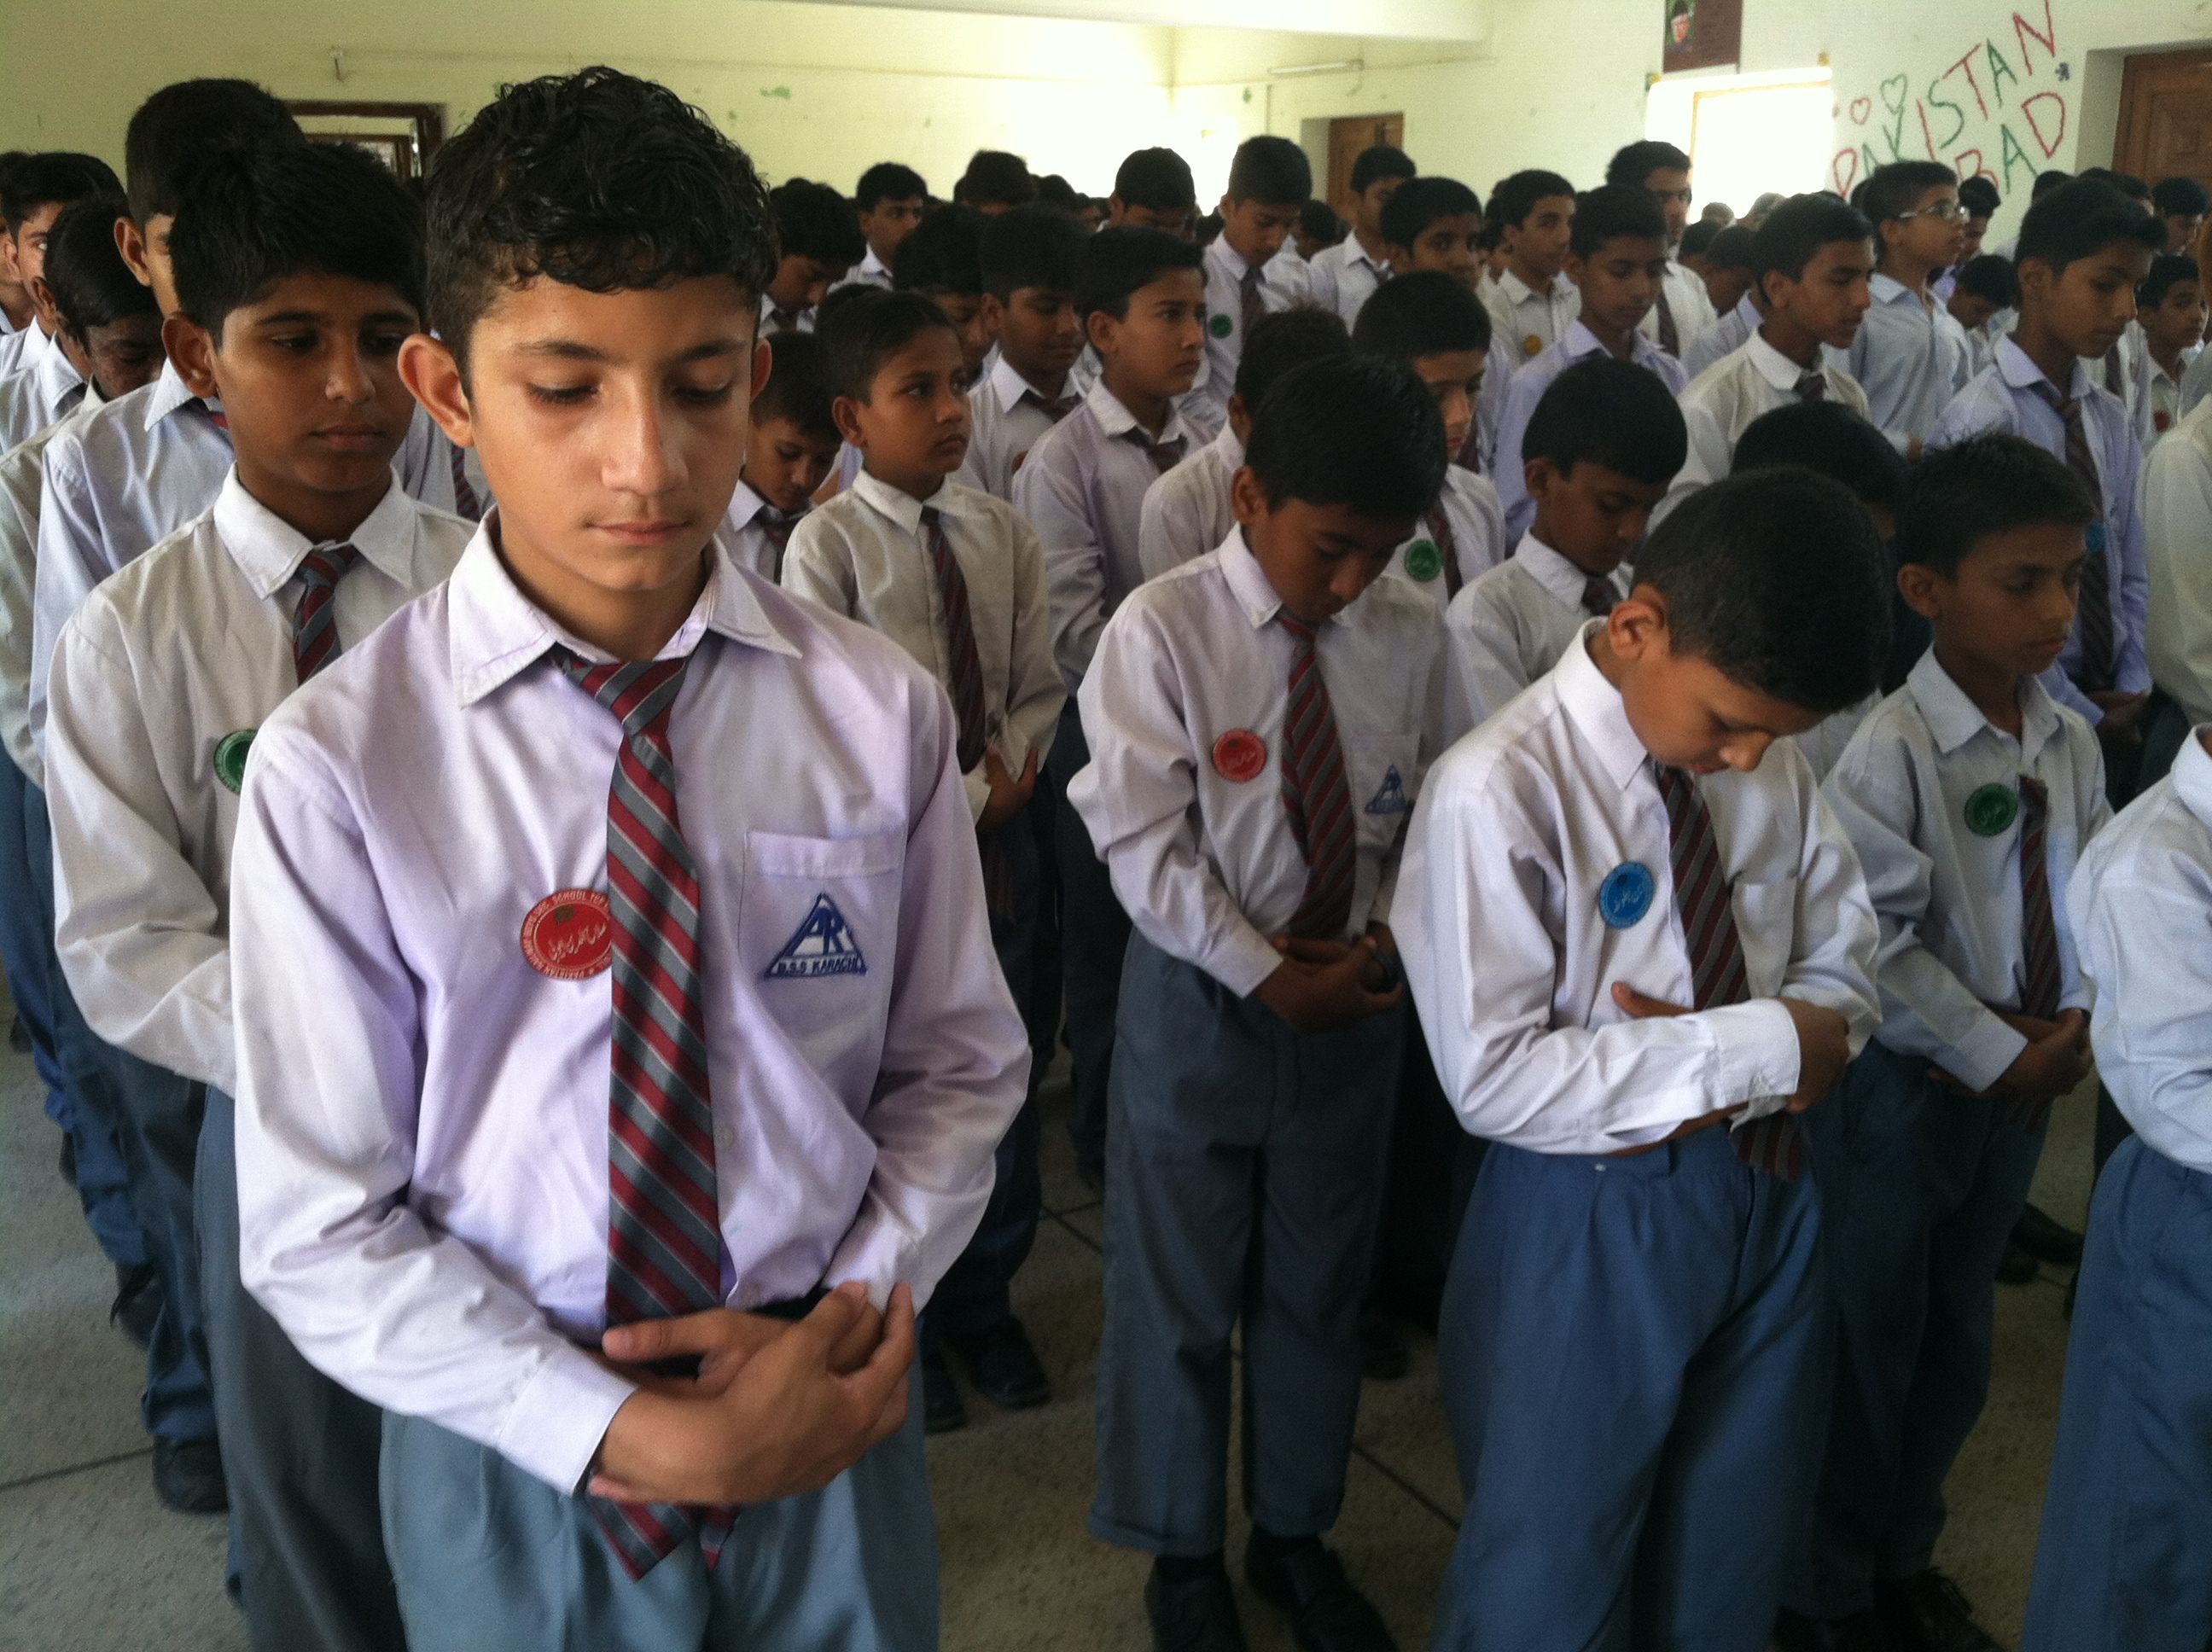 Middle and high school boys line up for the opening assembly with prayer and the pledge of allegiance at the Pakistani Railway School in Karachi, The school was adopted by the nonprofit, The Citizens Foundation, last year and has already seen a jump in test scores.